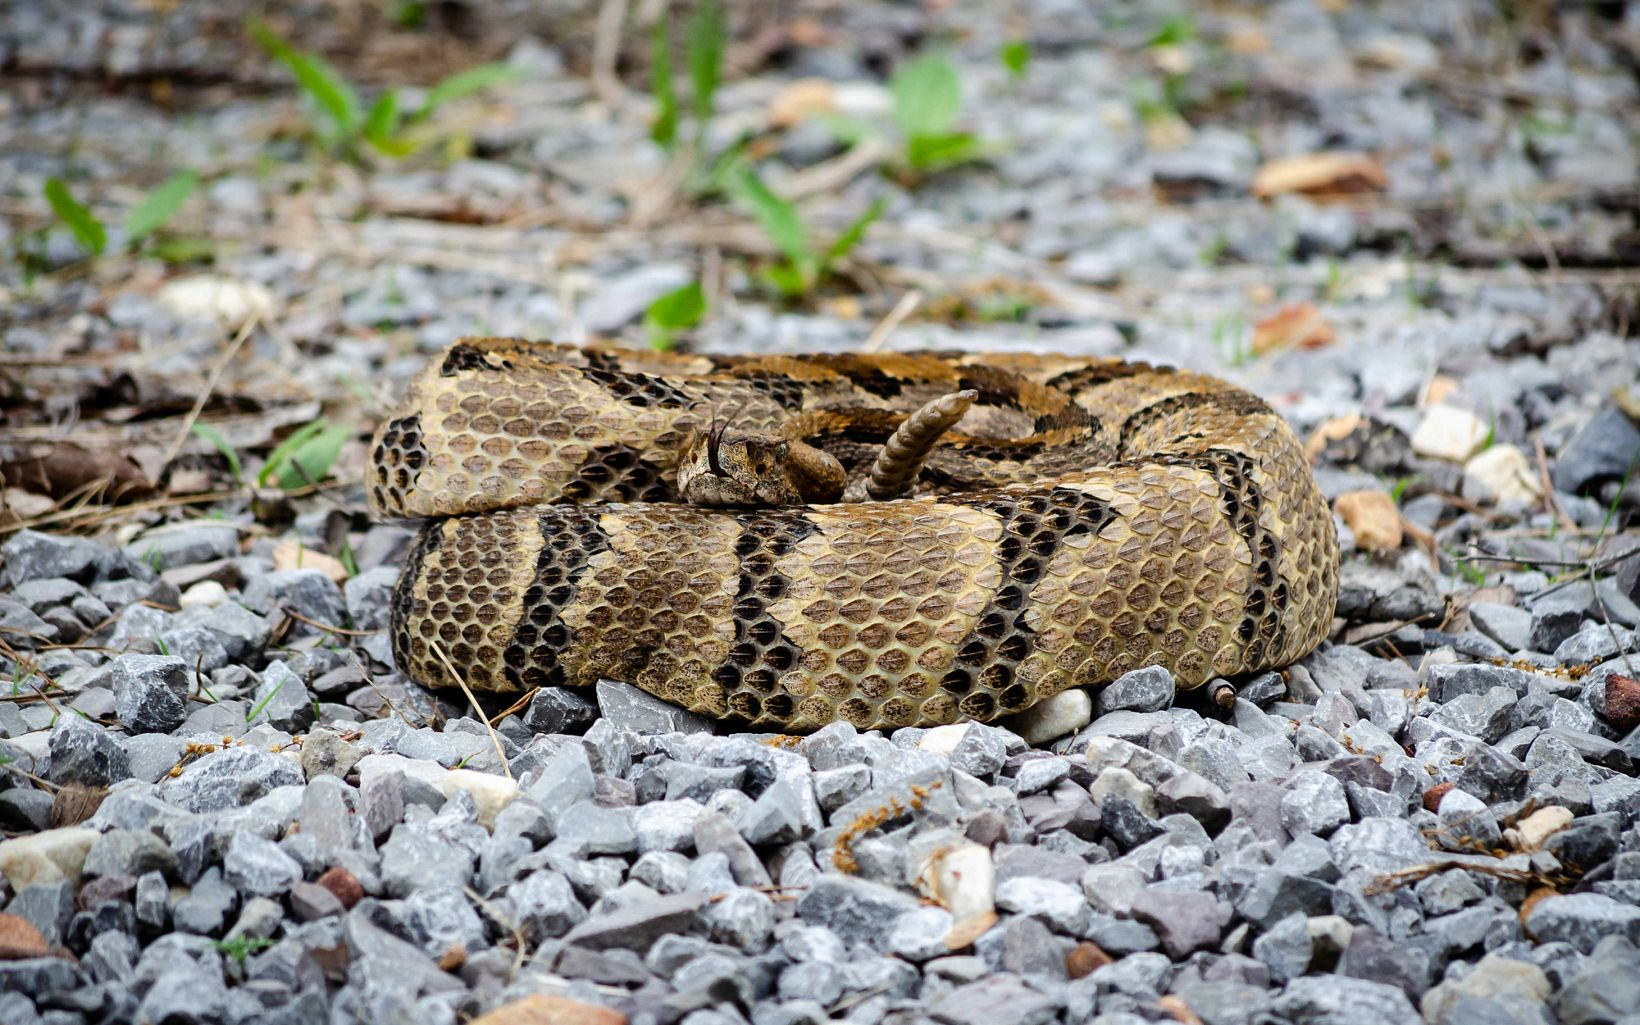 A snake with brown, black and tan markings sit curled up, looking at the camera, on a gravel road.